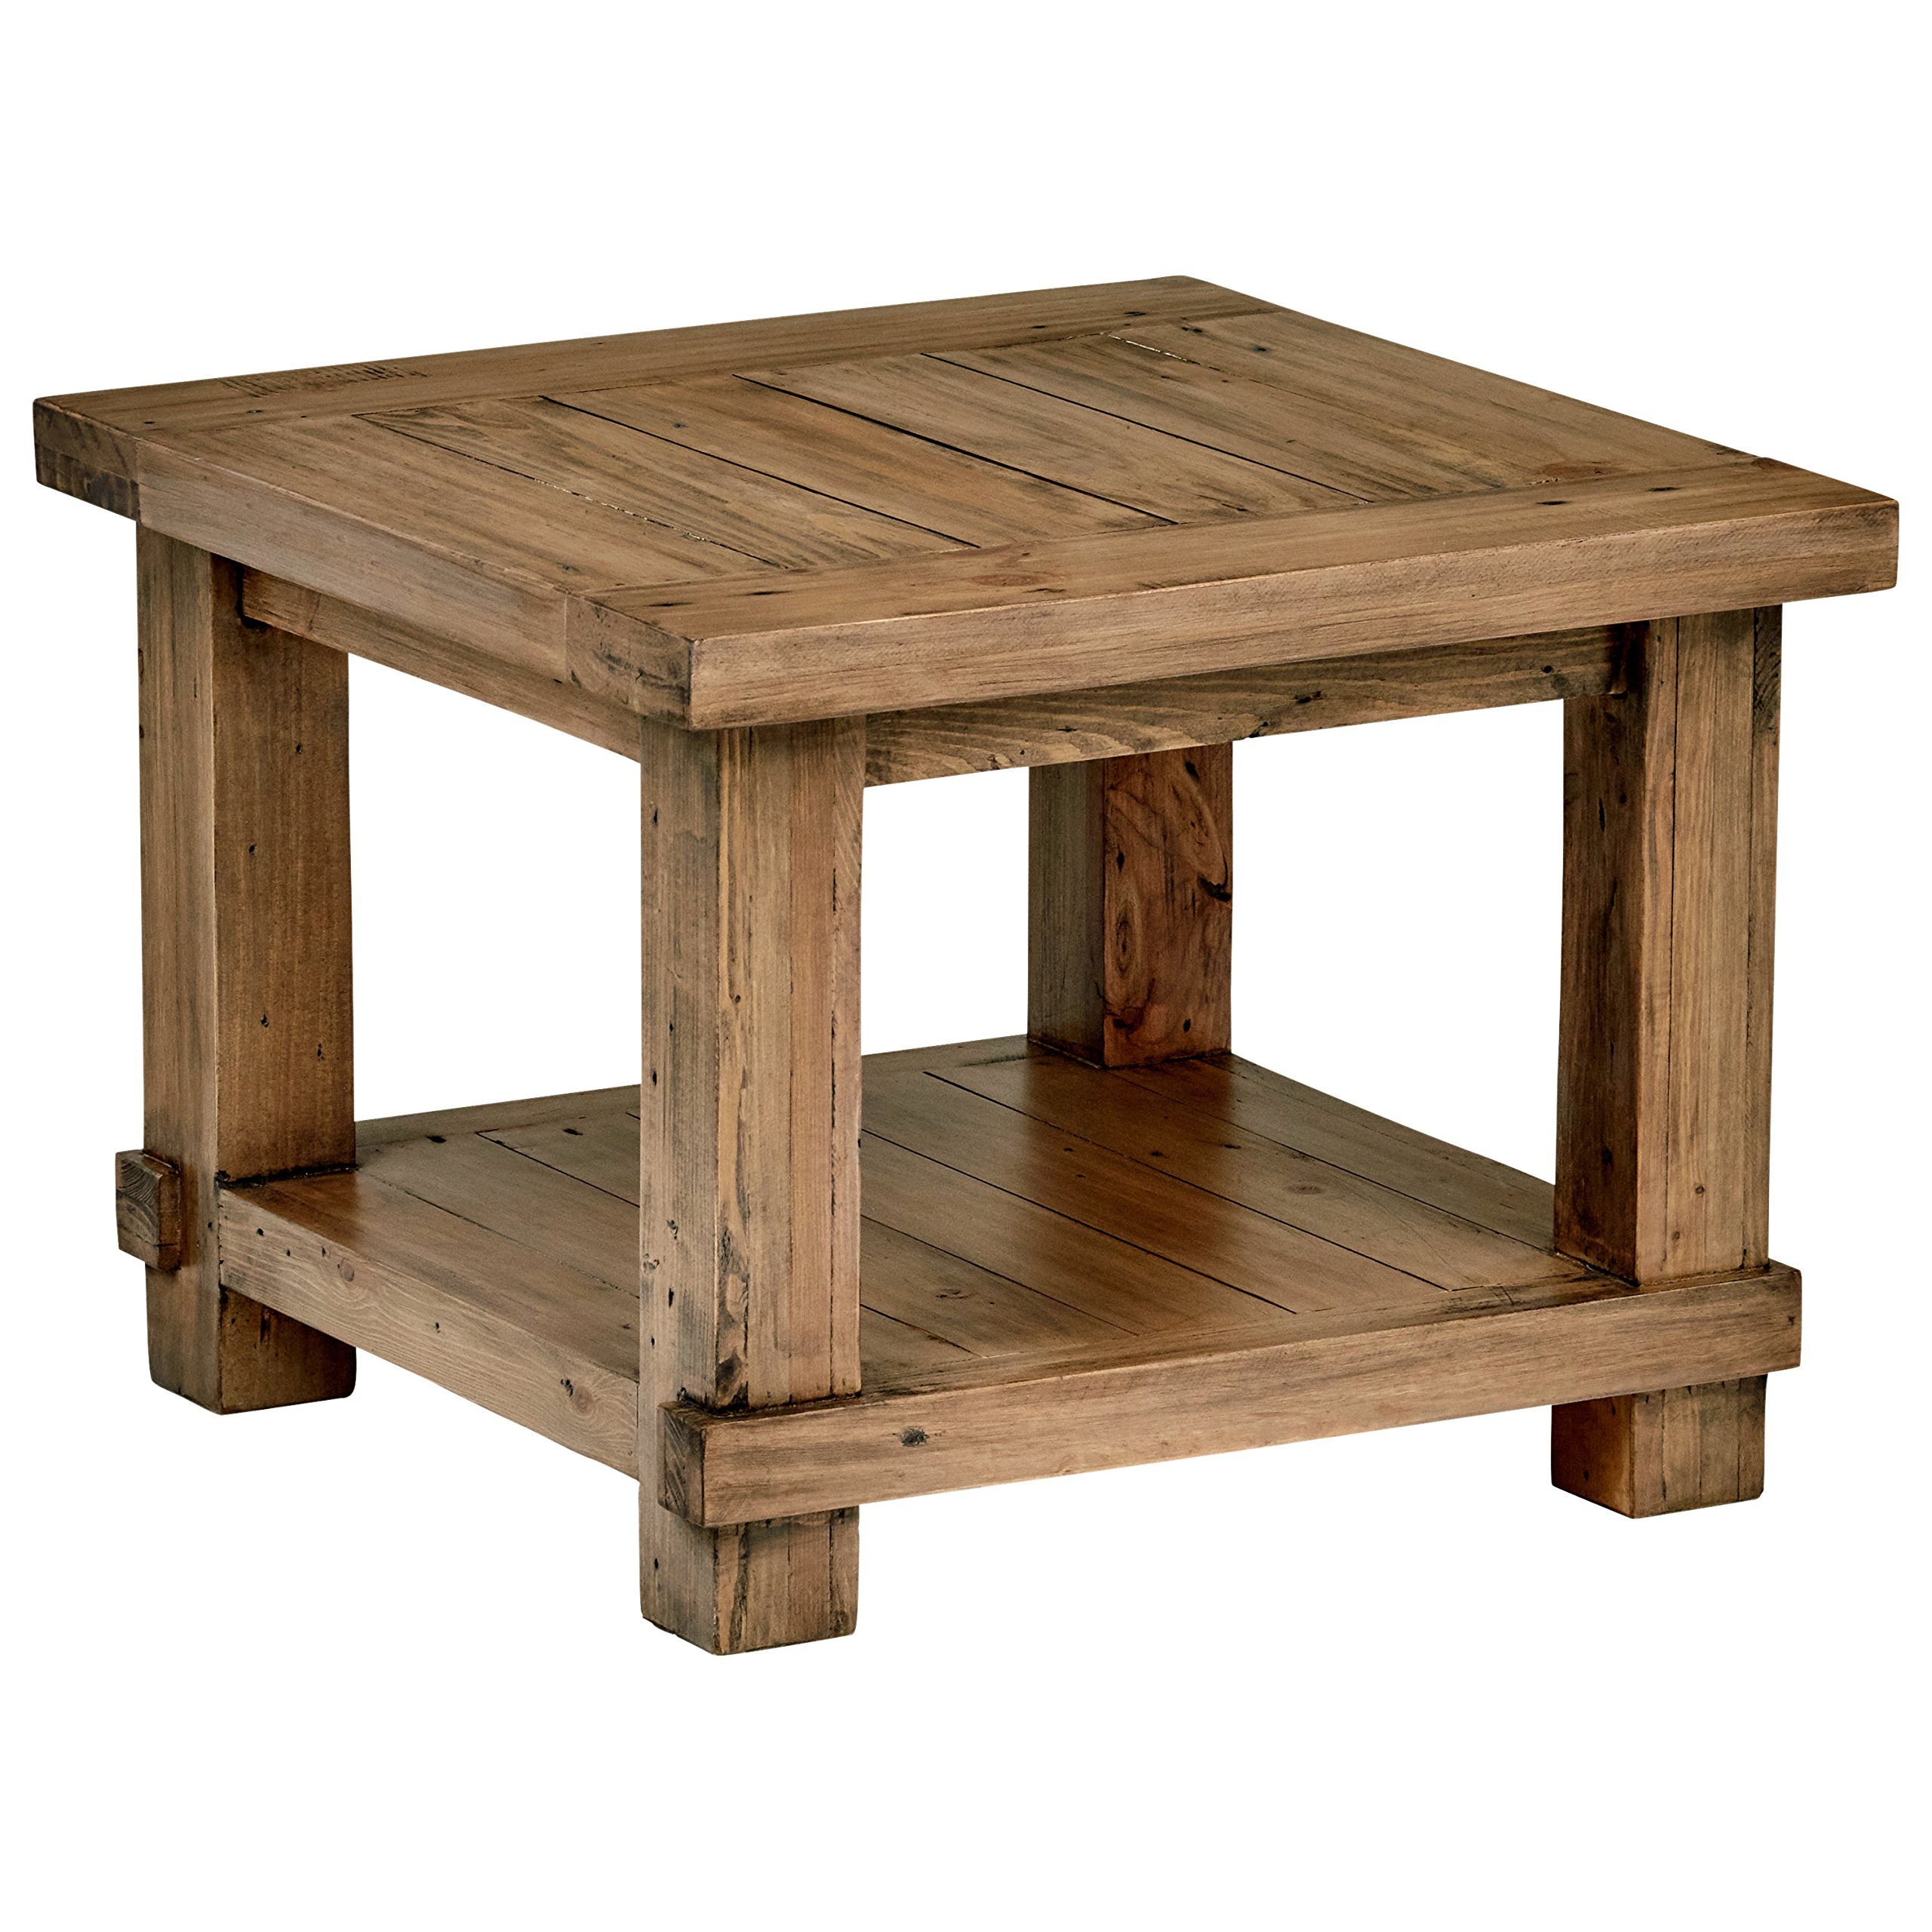 Stone & Beam Ferndale Rustic Side Table, 24'' W, Pine